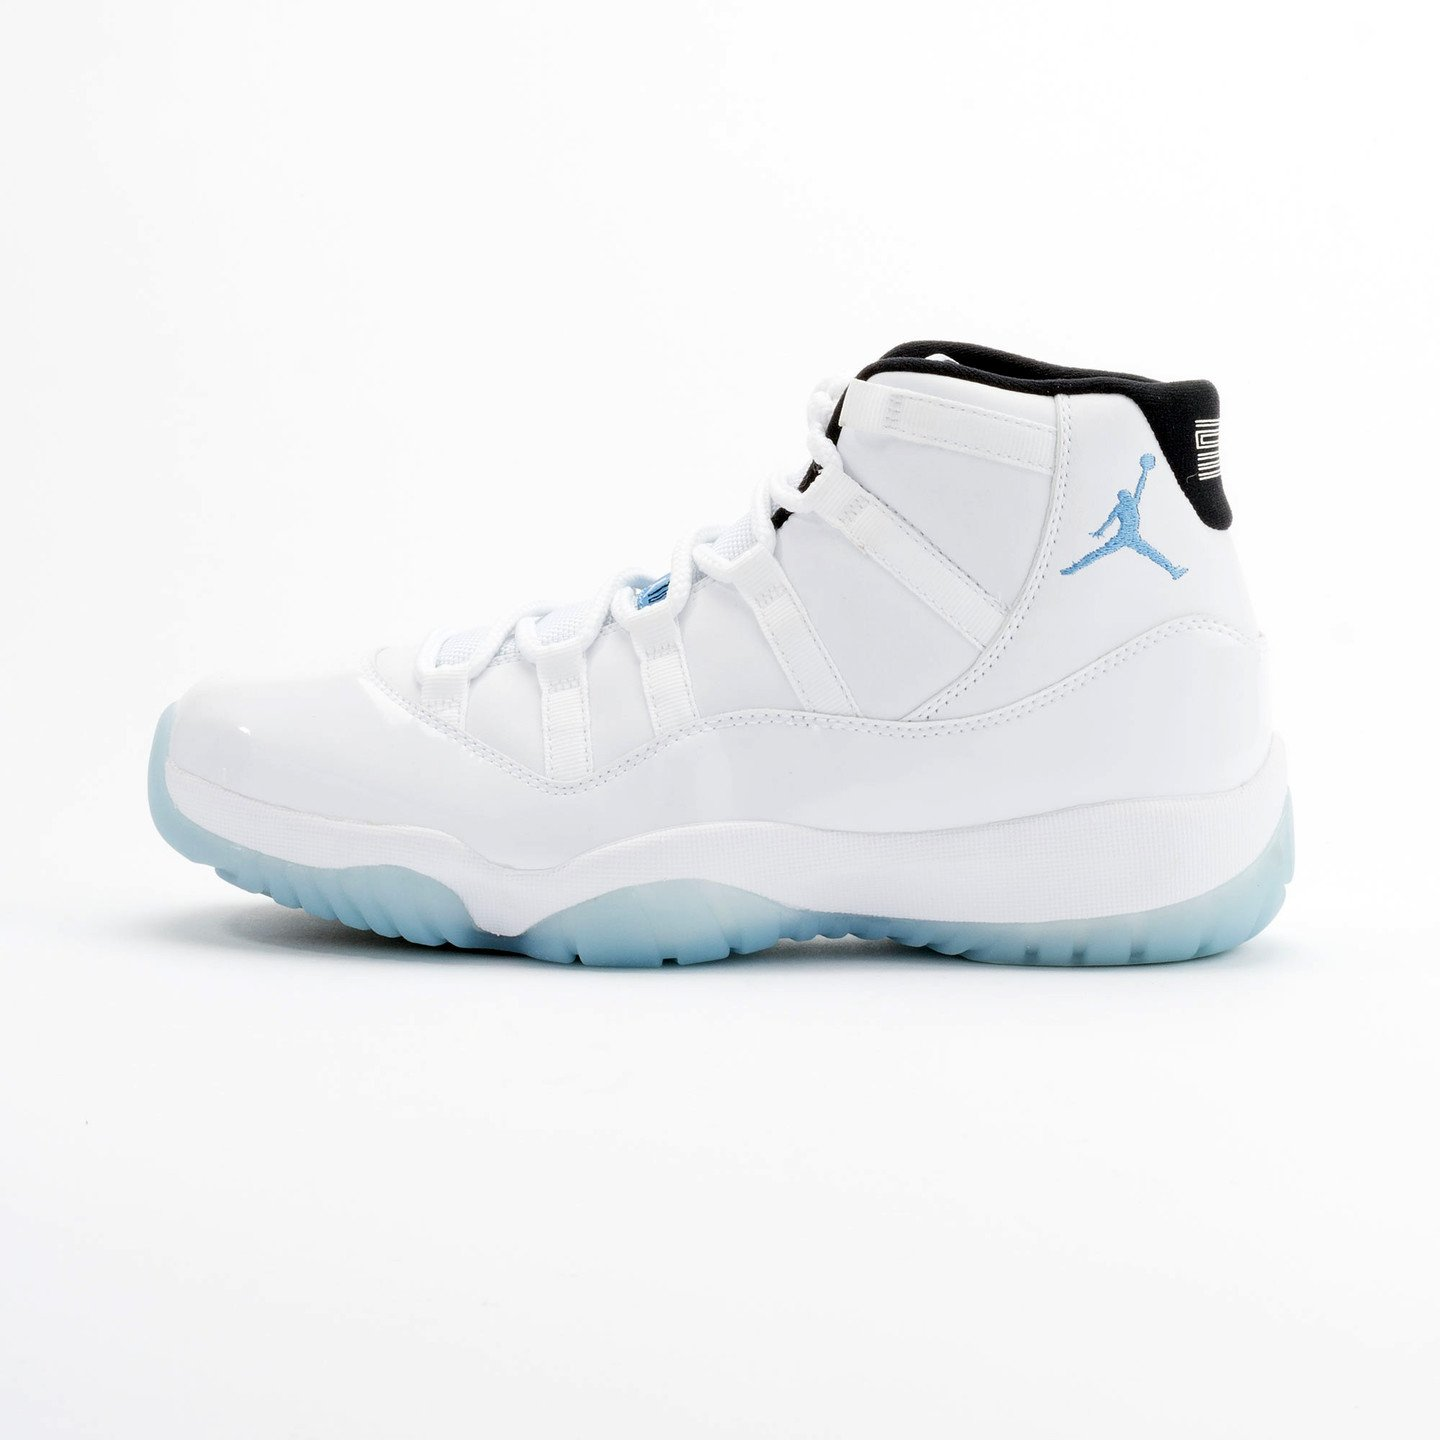 Jordan Air Jordan 11 Retro White/Legend Blue-Black 378037-117-45.5